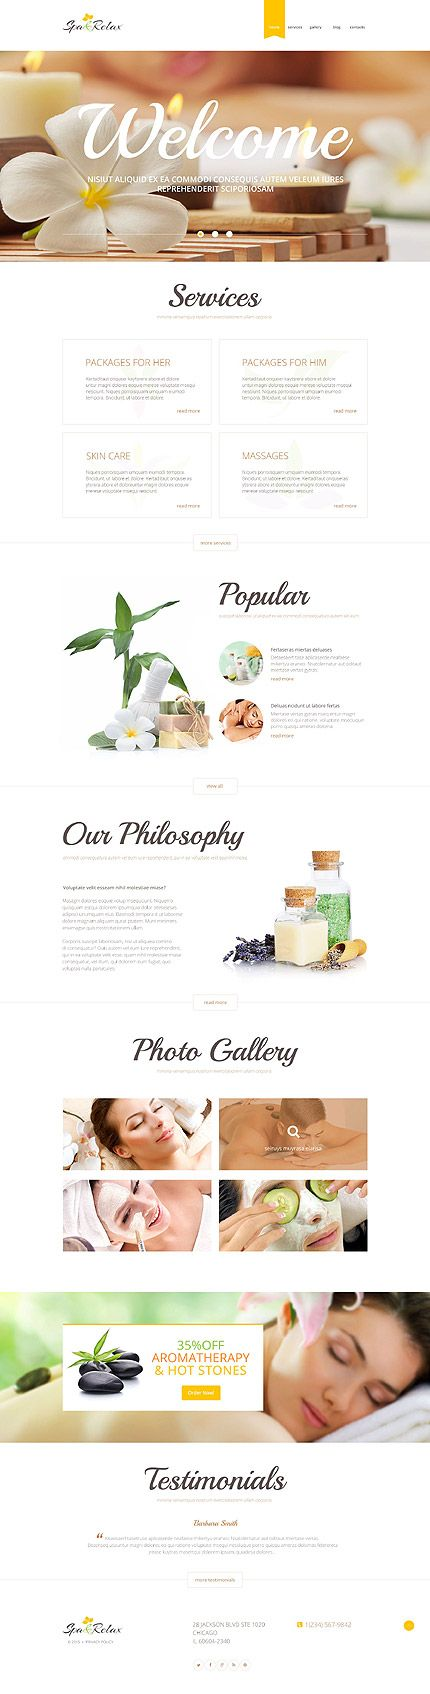 9 best images about SPA brochure on Pinterest Cherries, Resorts - spa brochure template